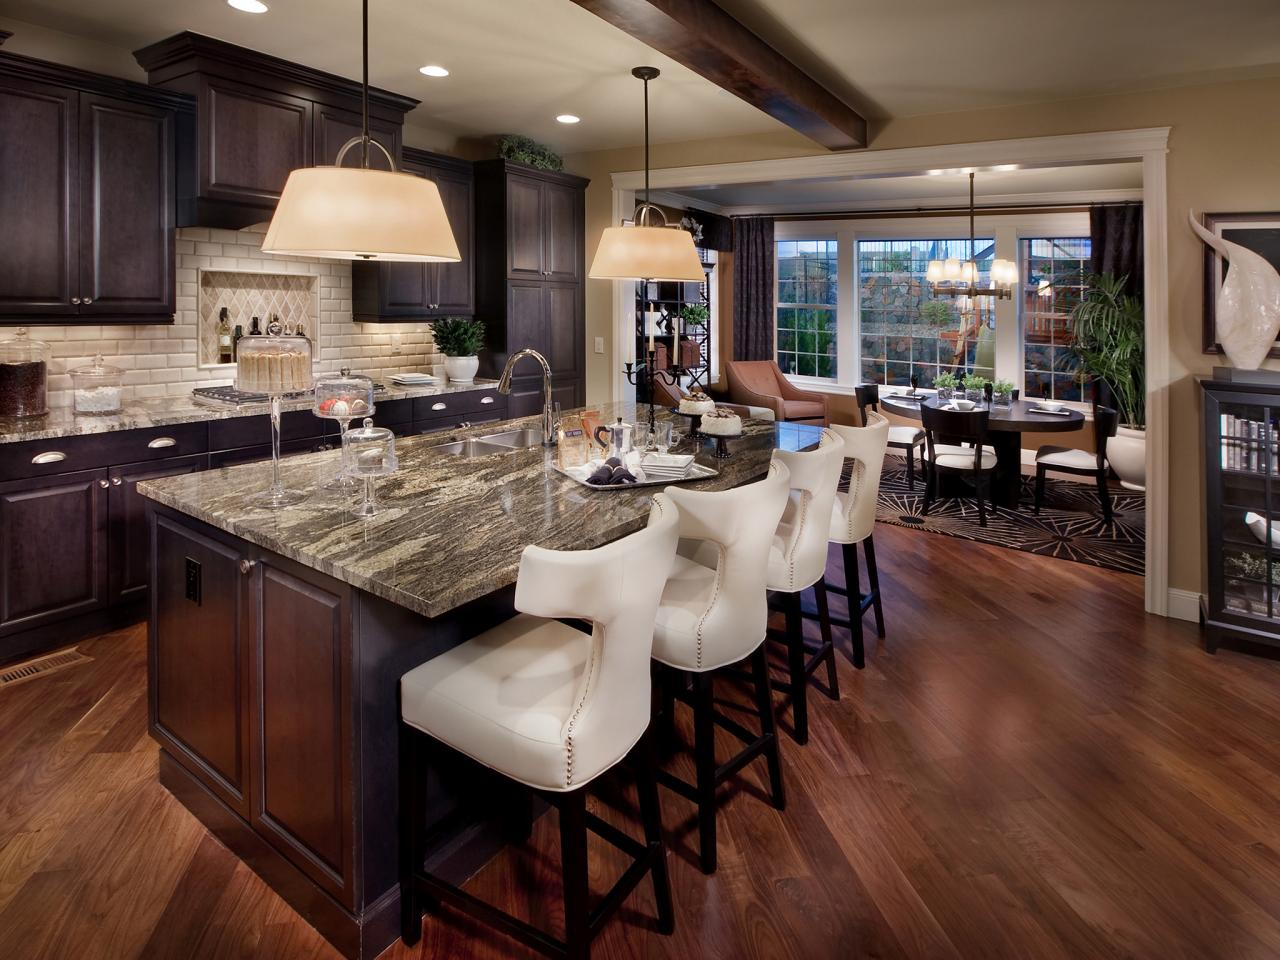 Black kitchen islands kitchen designs choose kitchen for Best kitchen renovation ideas